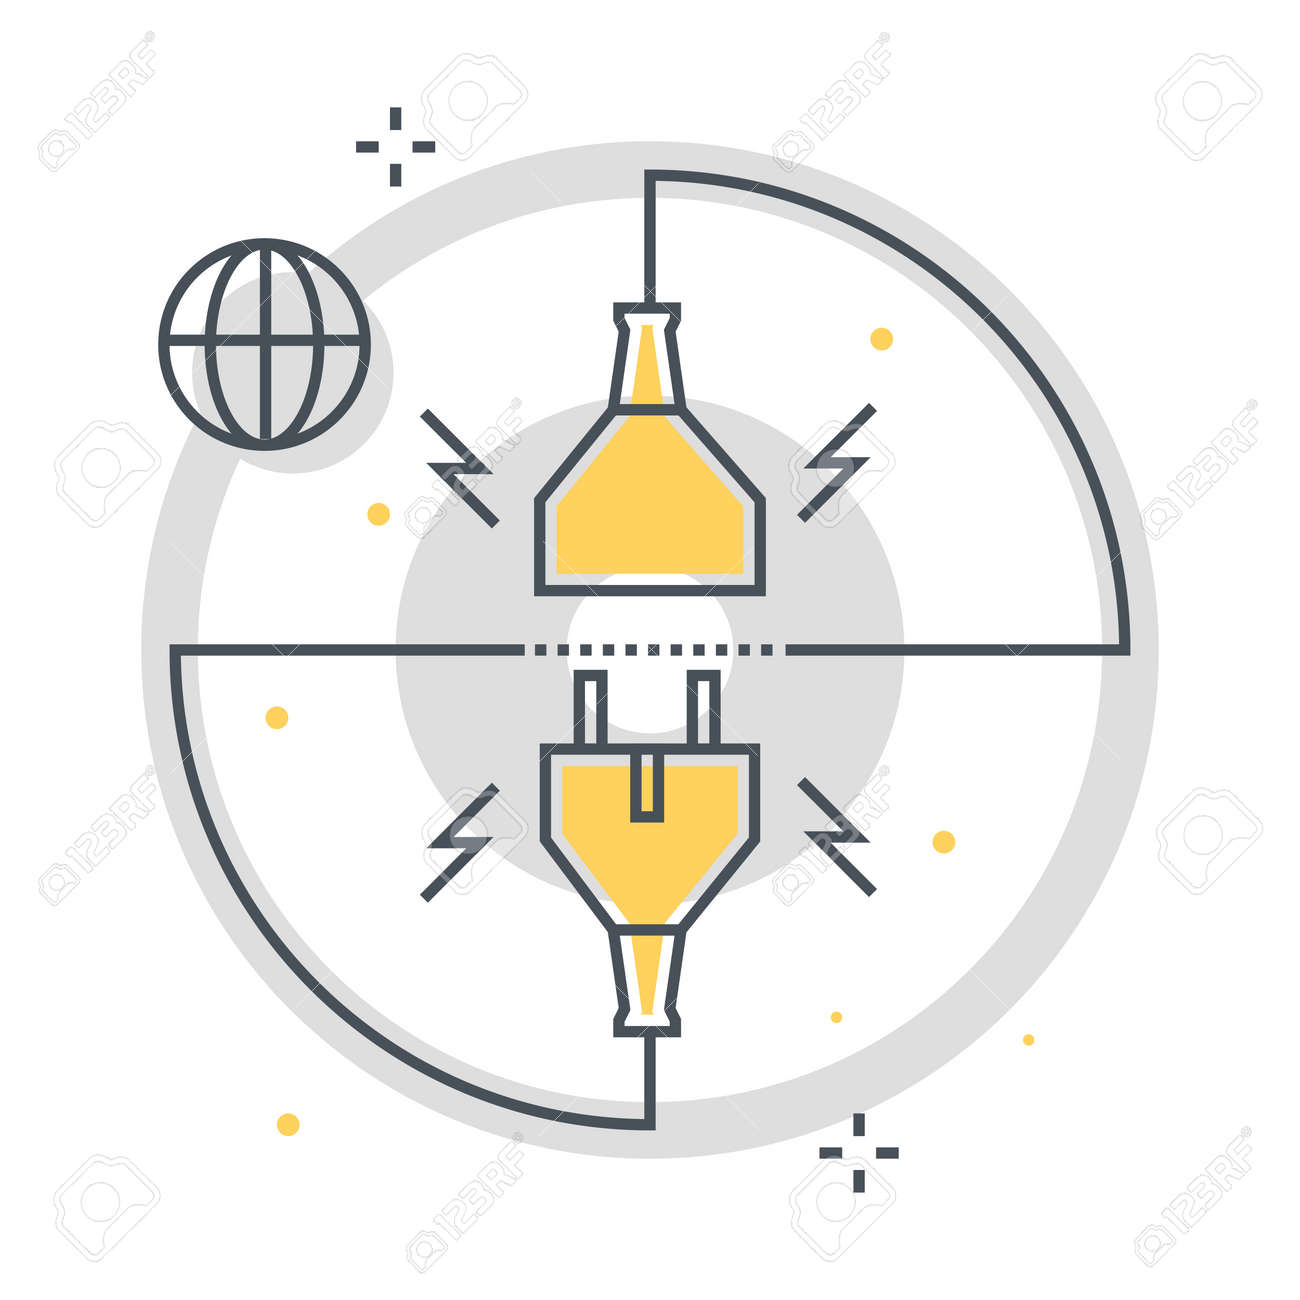 Connection related color line vector icon, illustration. The icon is about cable, socket, router, wire. The composition is infinitely scalable. - 163697635